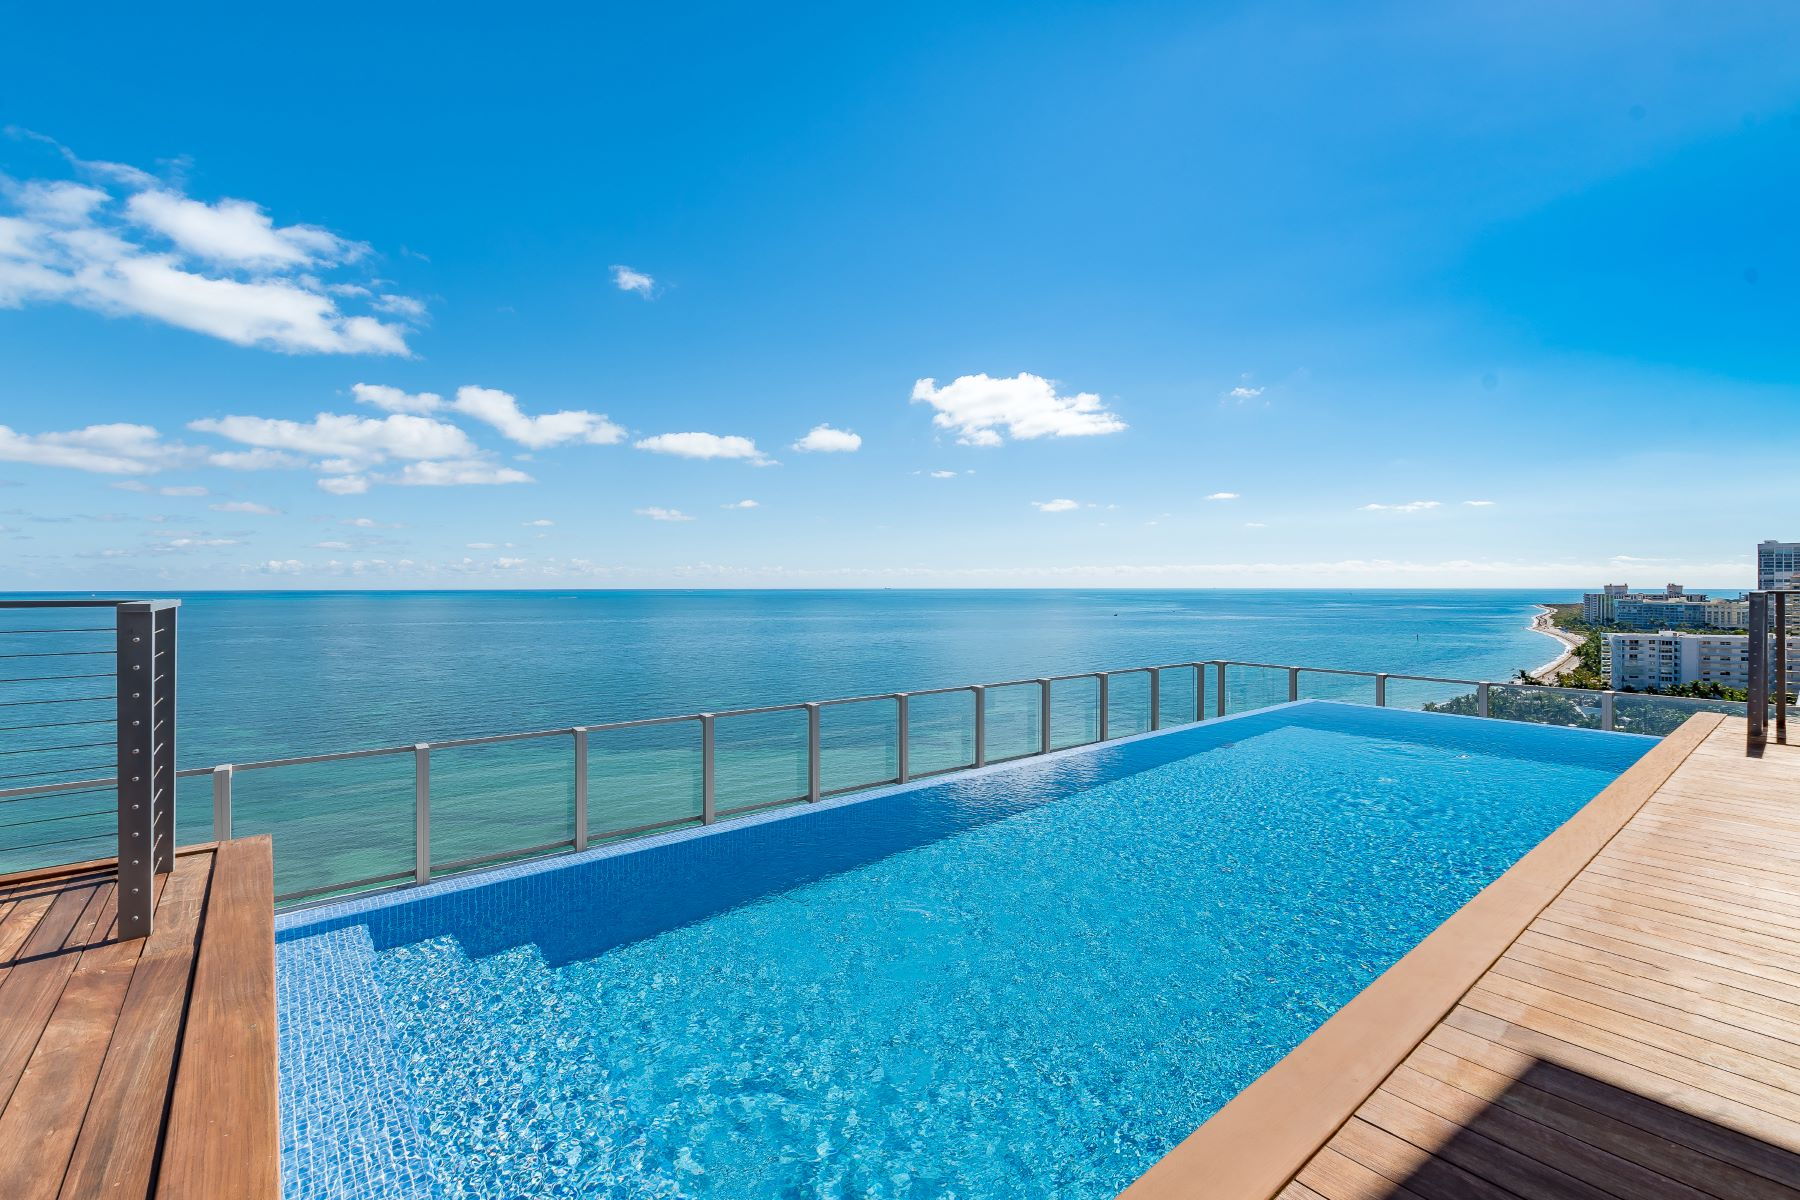 Condominium for Sale at 360 Ocean Dr 360 Ocean Dr PH1S Key Biscayne, Florida 33149 United States